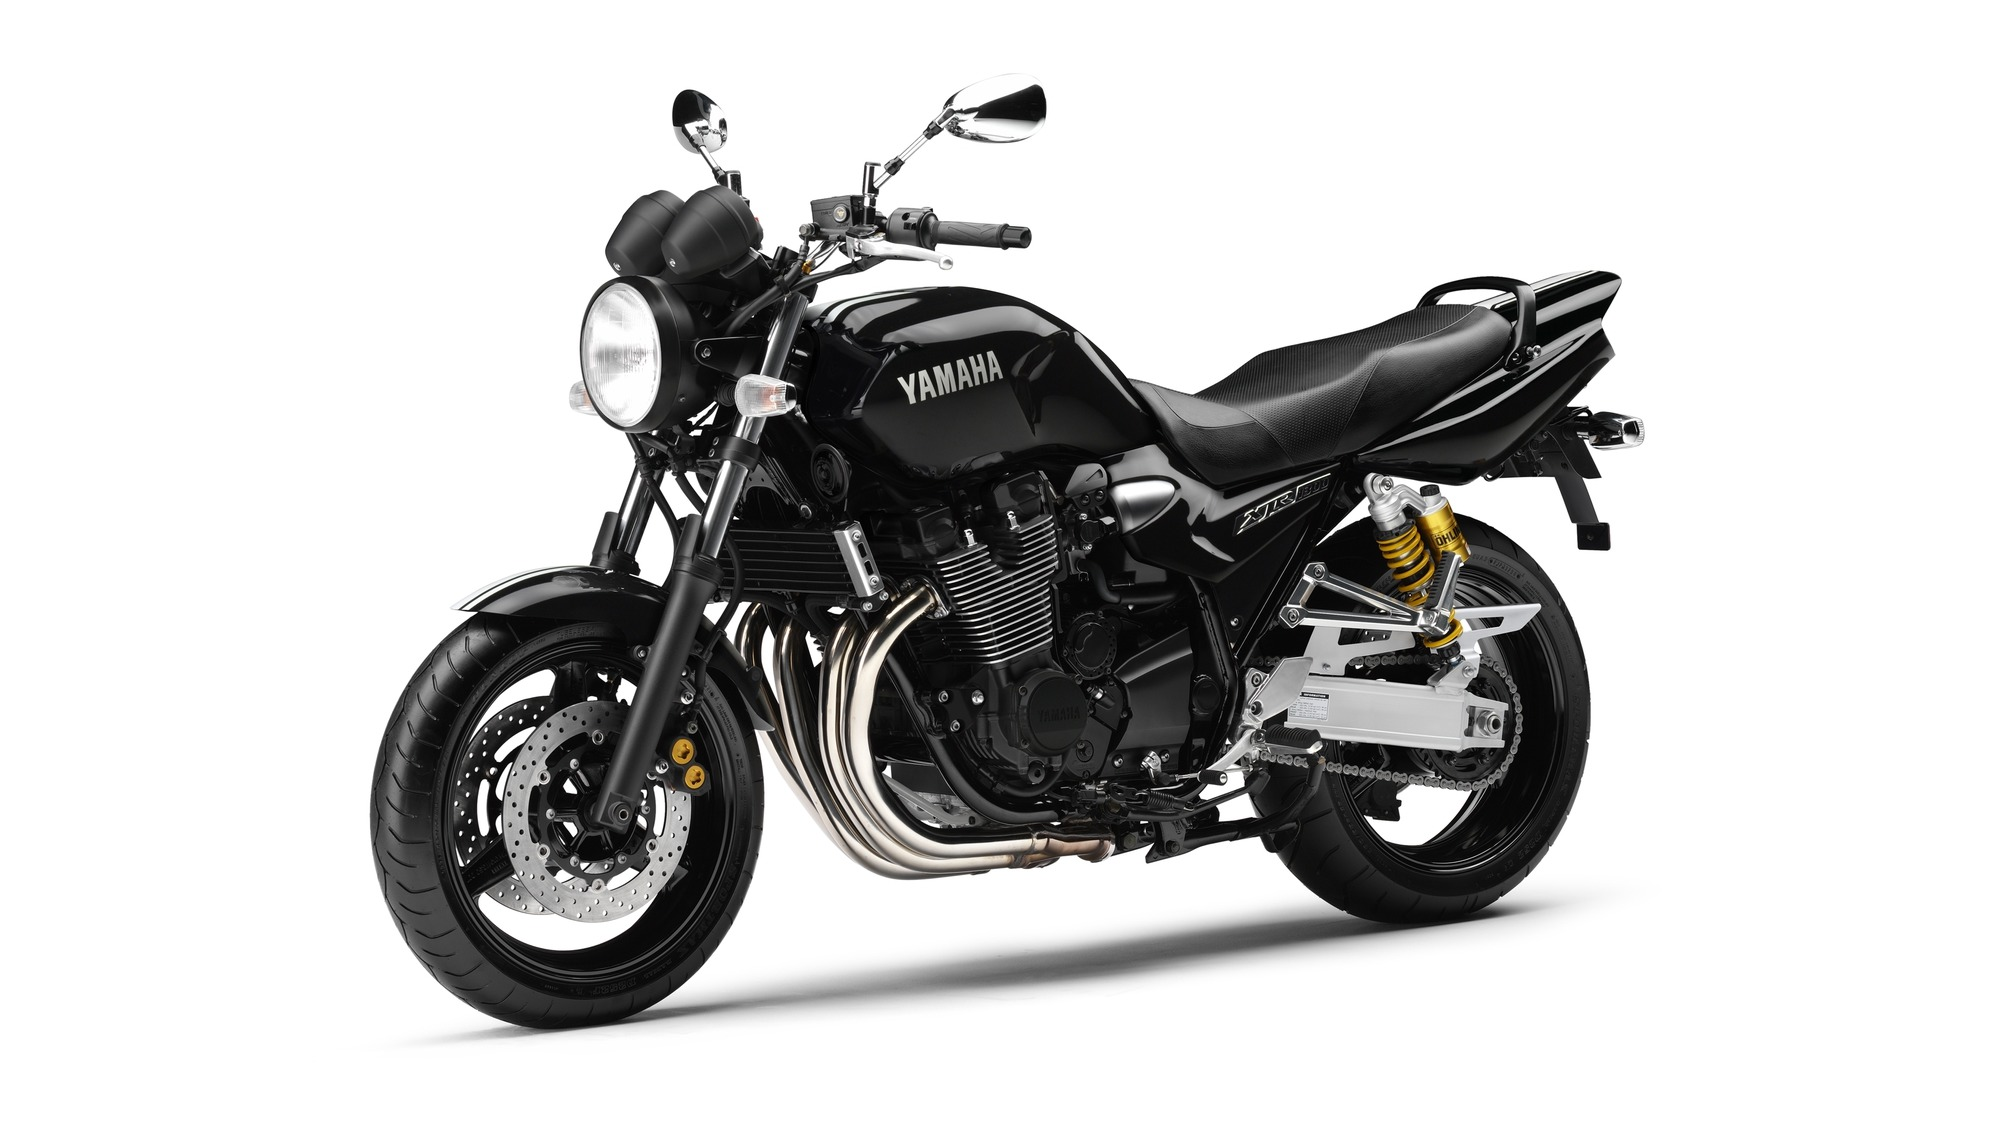 Painless Wiring Diagram Chevy together with Custom Motorcycle Wheels besides Chevy 5 Speed Manual Transmission Diagram together with 2013 Yamaha XJR 1300 further Harley Sportster Engine Diagram. on yamaha 1300 wiring diagram